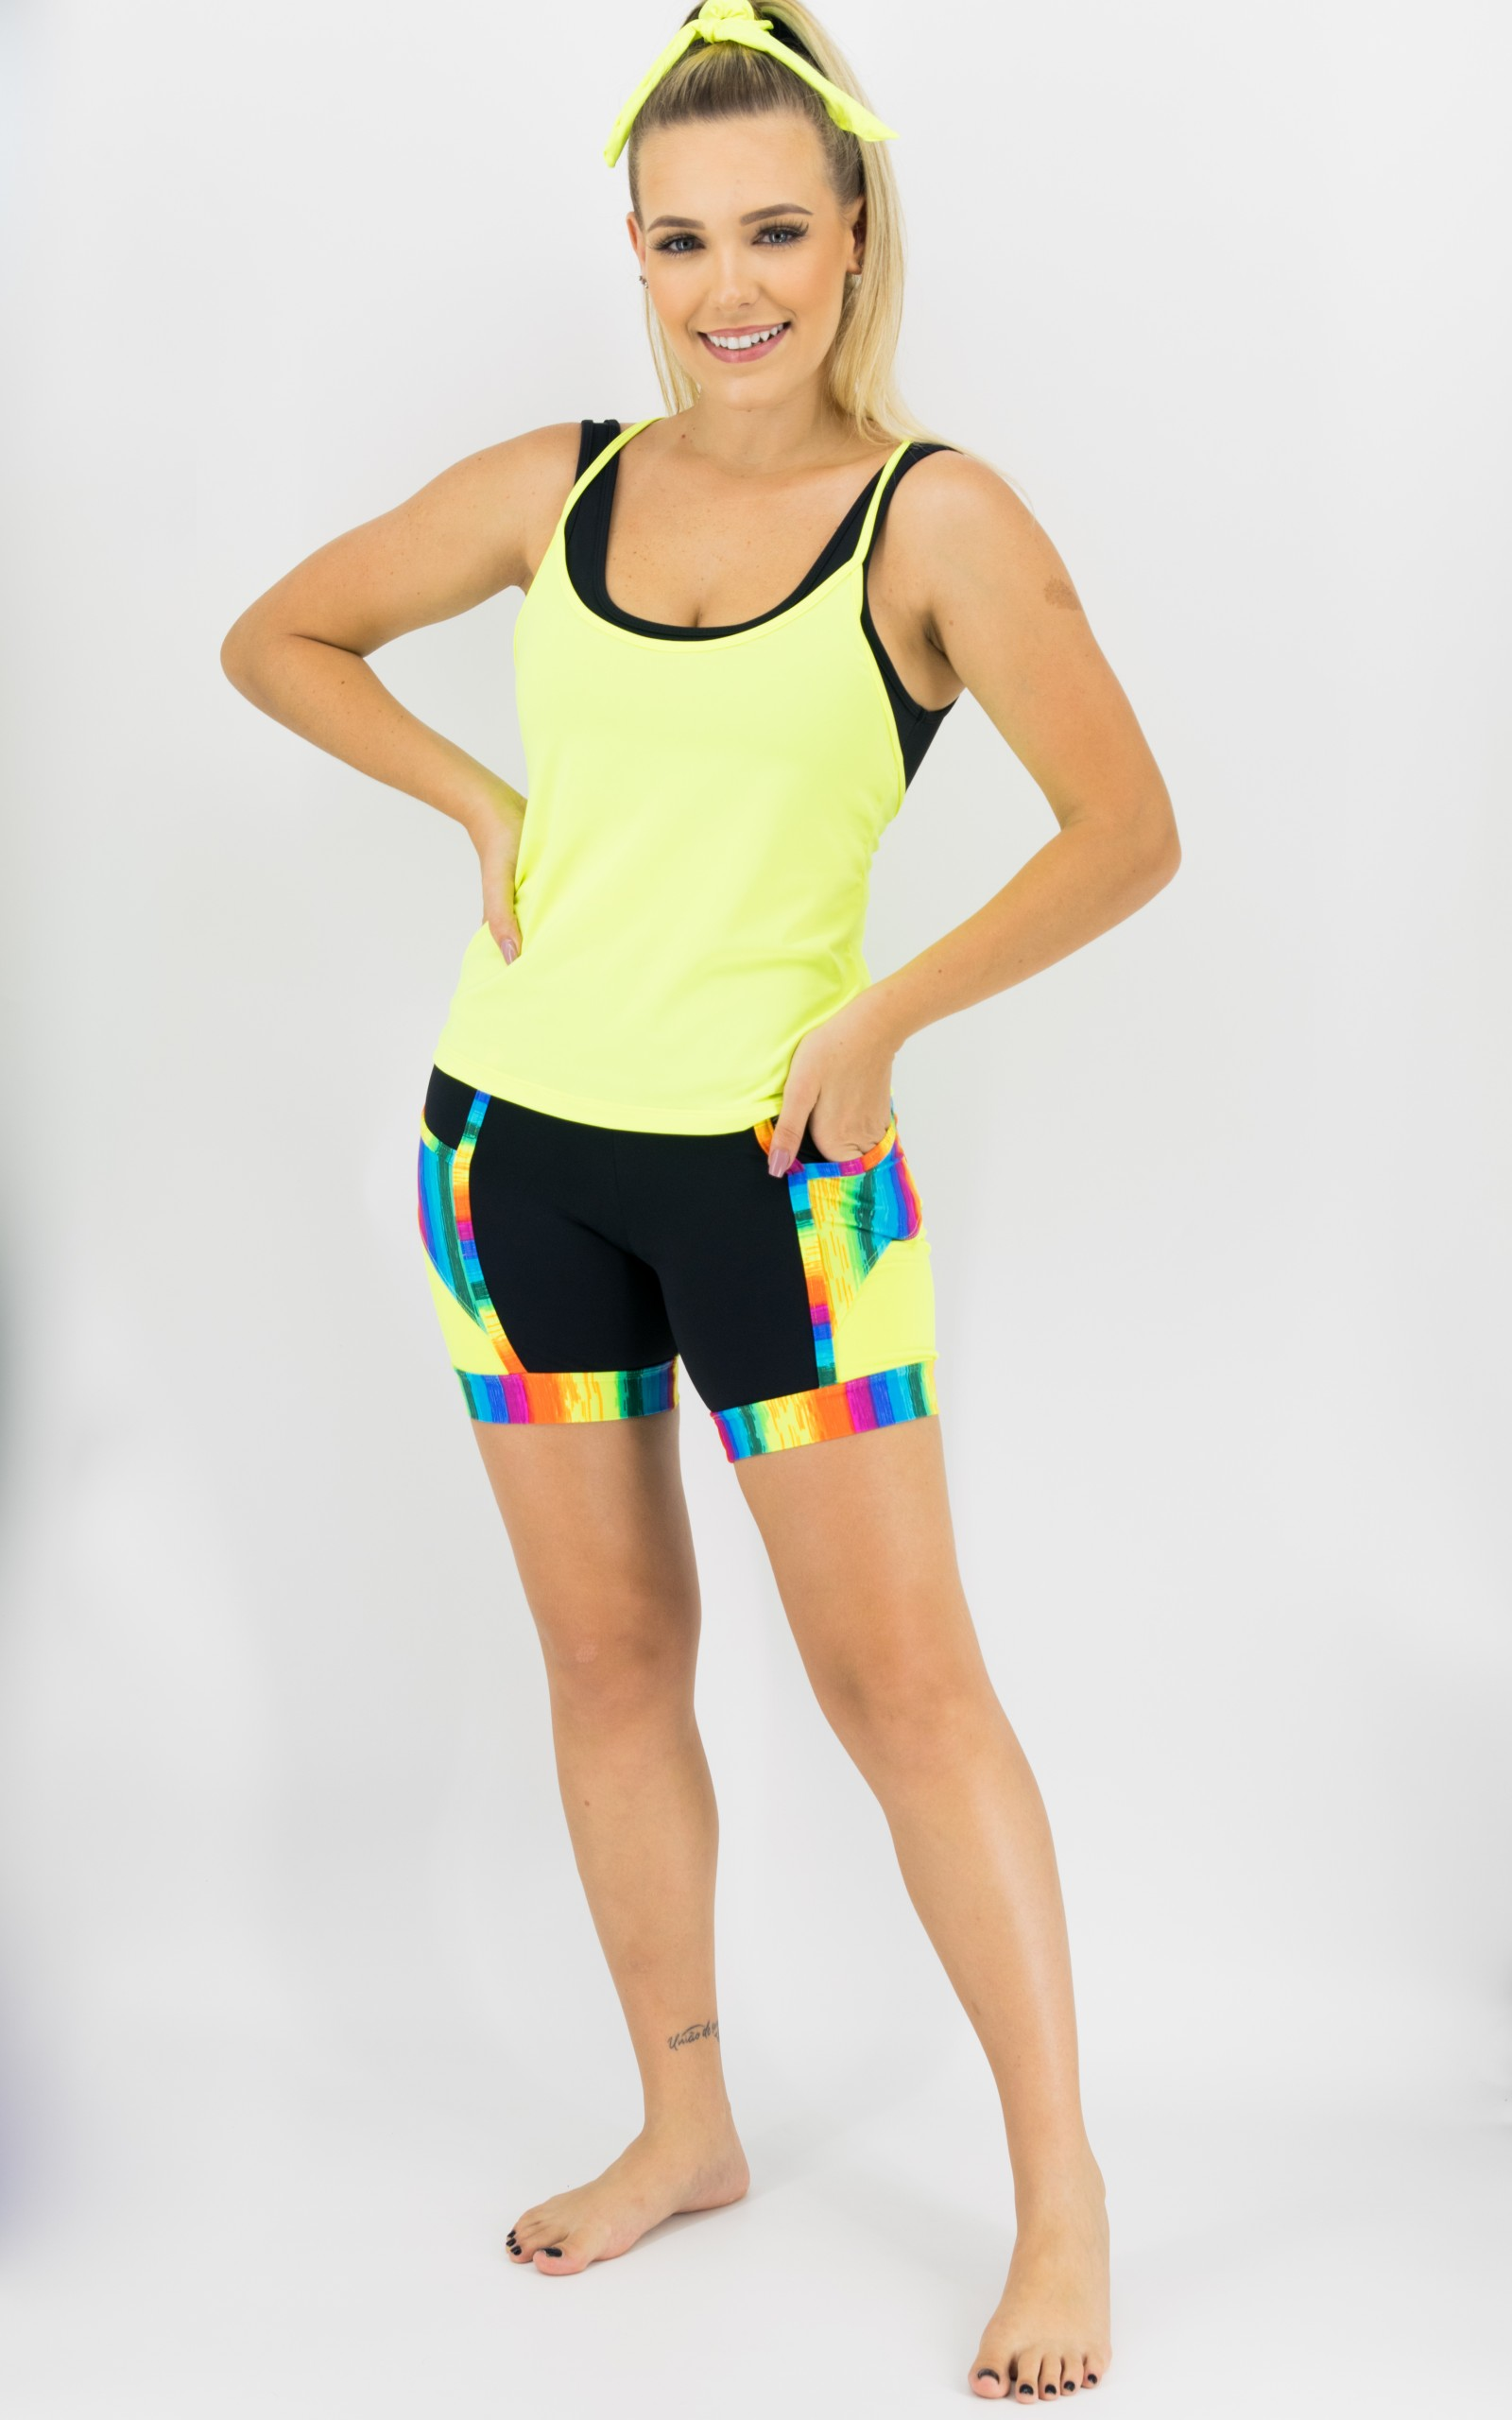 Regata Summer Neon, Coleção Move Your Body - NKT Fitwear Moda Fitness